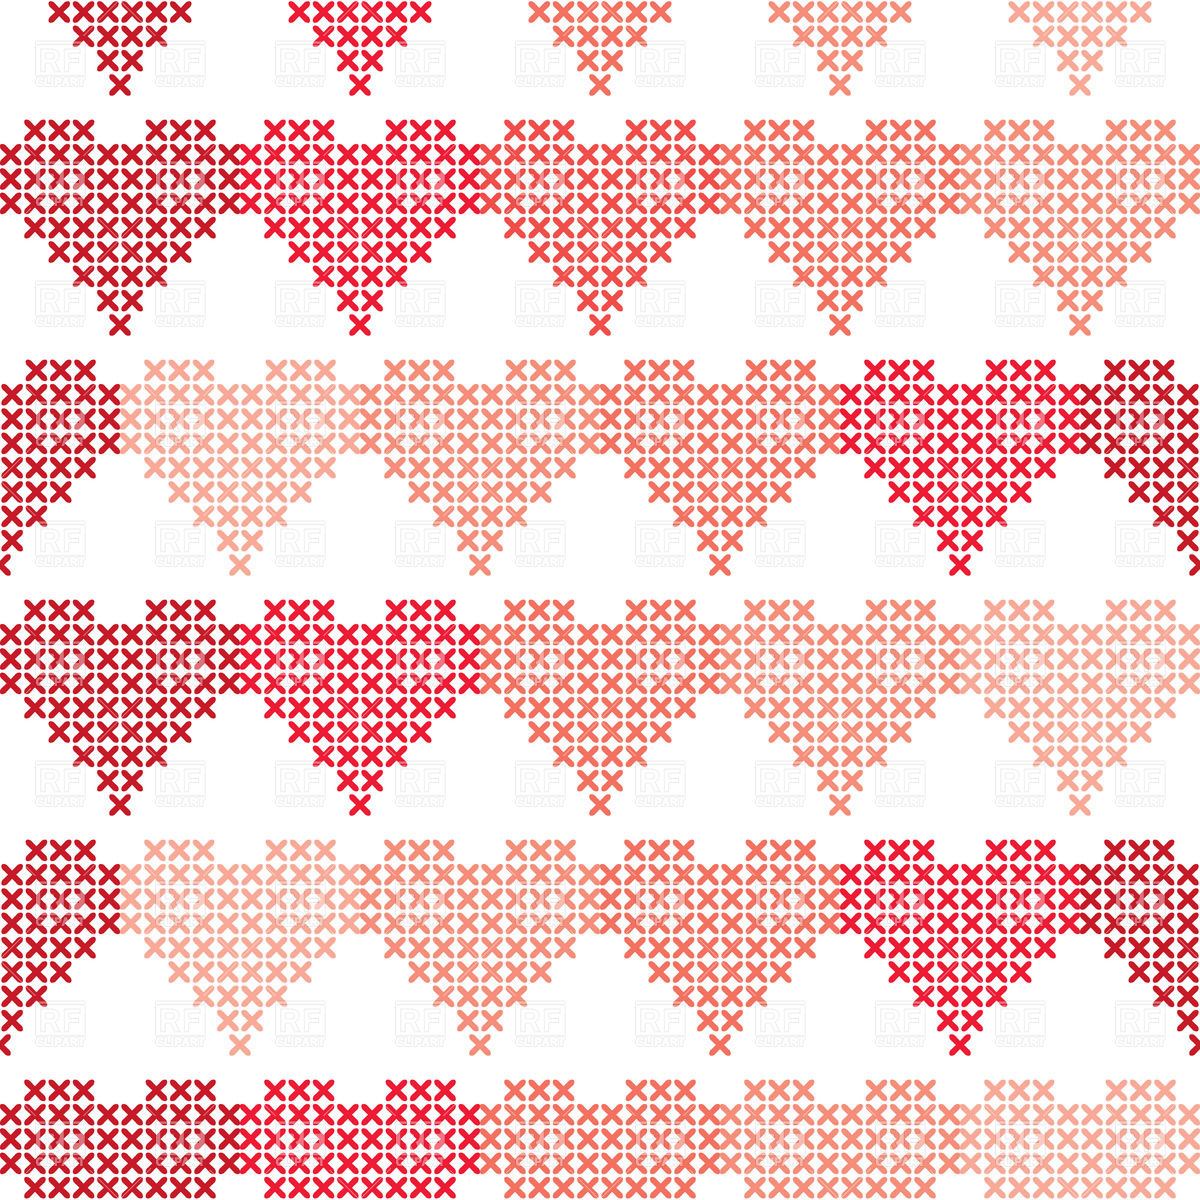 Seamless pattern made of embroidered hearts Vector Image #28115.